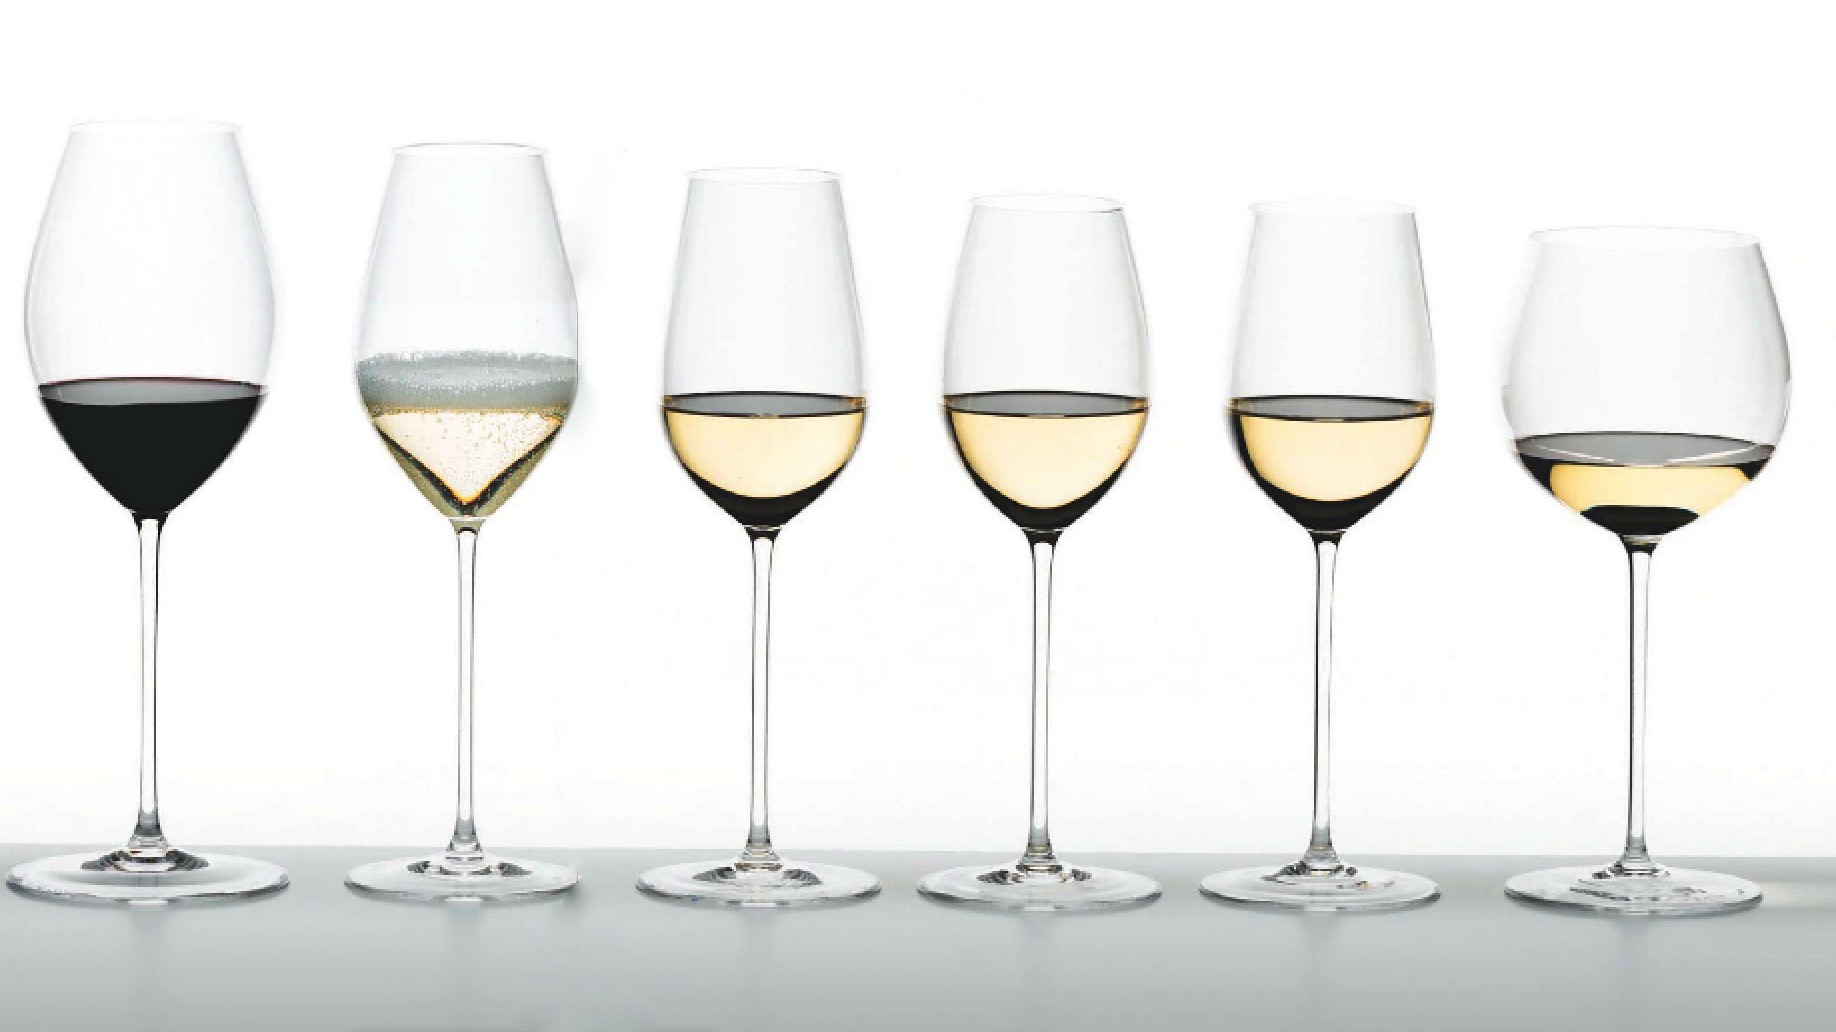 Vessel Advisement - A sommelier simplifies the wine glass selection process